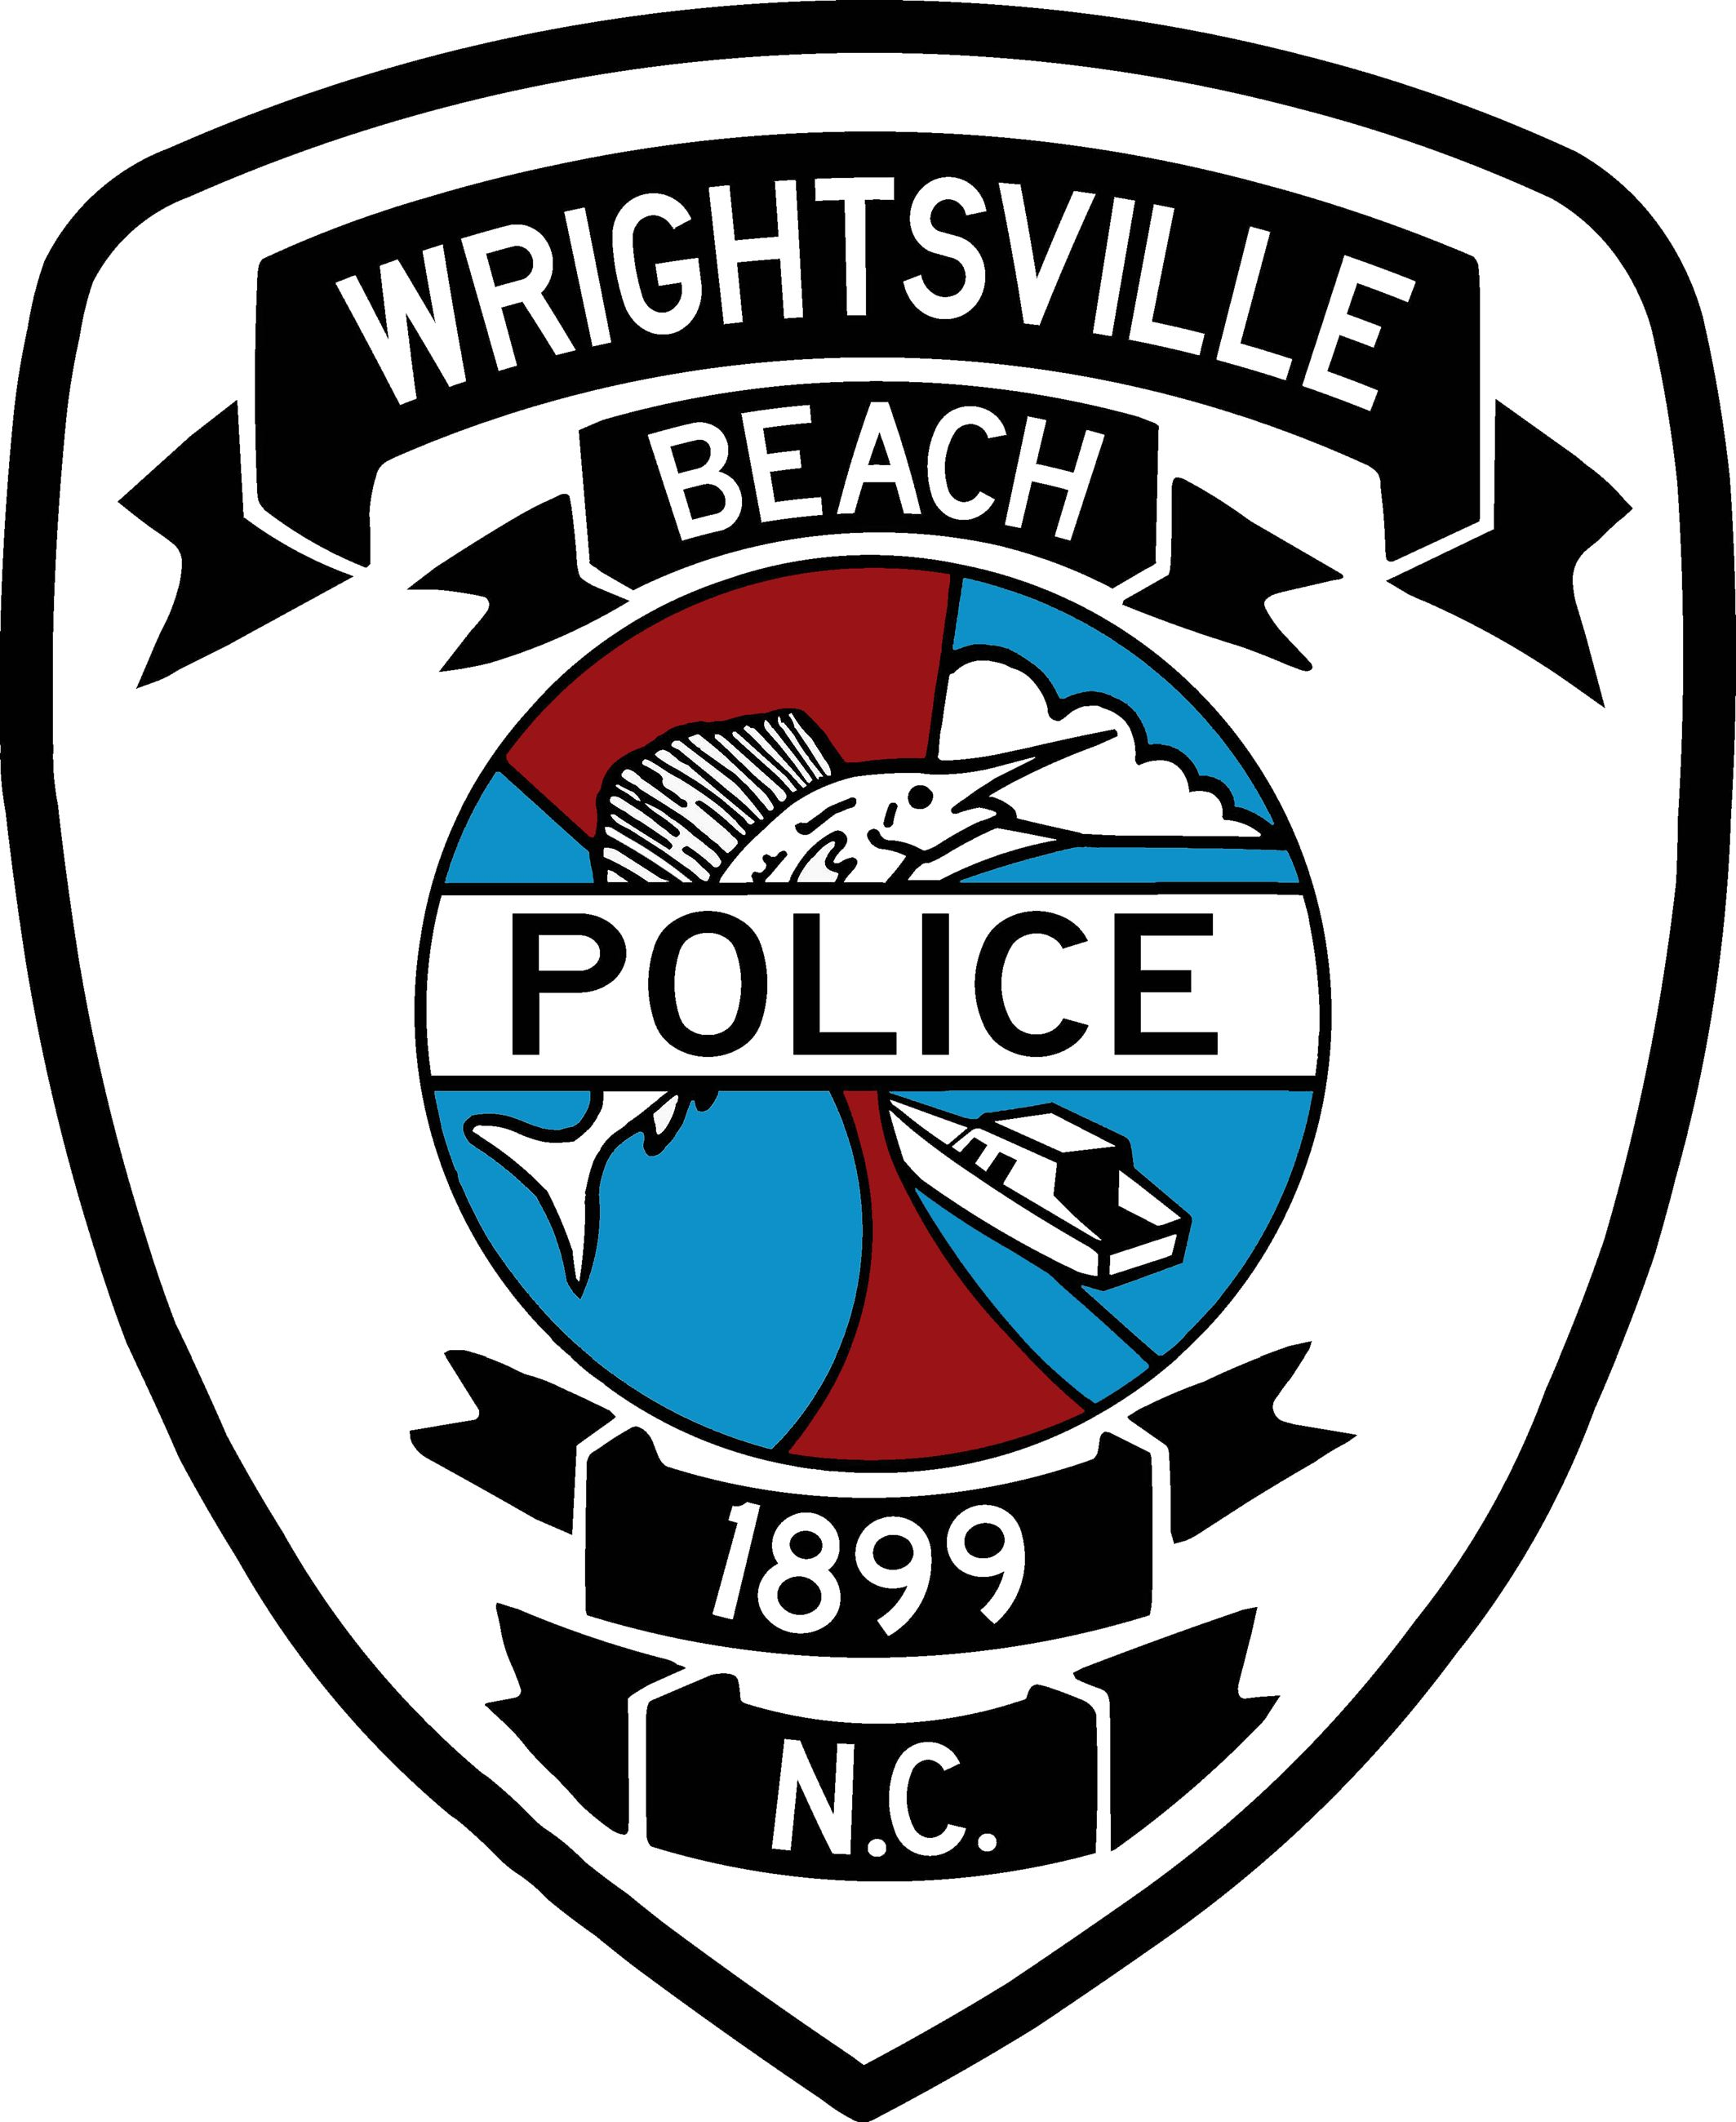 WBPD PATCH LOGO, Use this one 5.1.2013